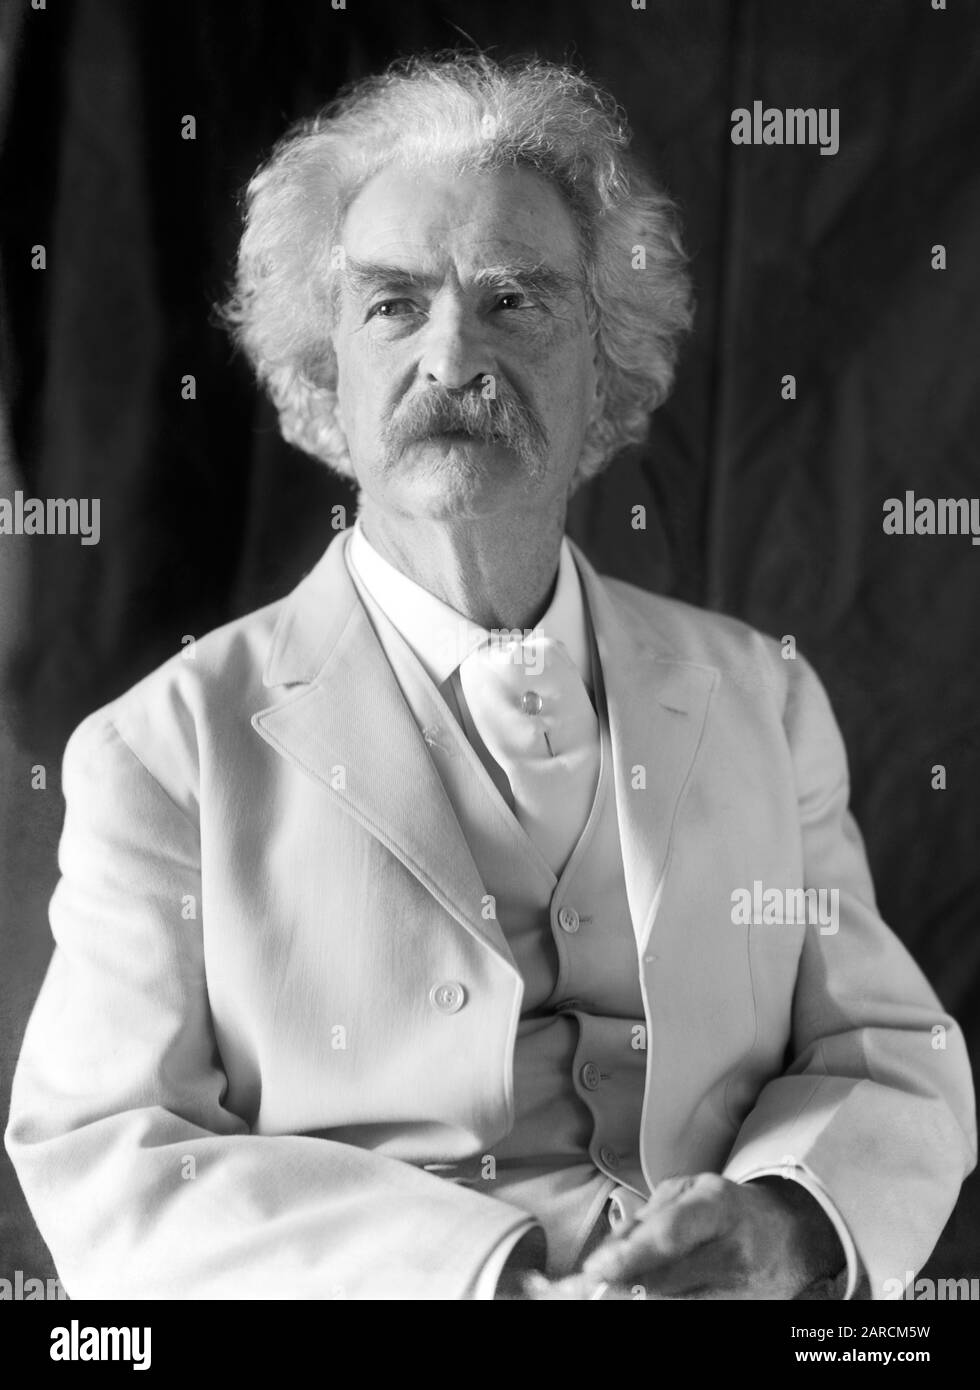 Vintage portrait photo of American writer and humourist Samuel Langhorne Clemens (1835 – 1910), better known by his pen name of Mark Twain. Photo circa 1906 by Frances Benjamin Johnston. Stock Photo